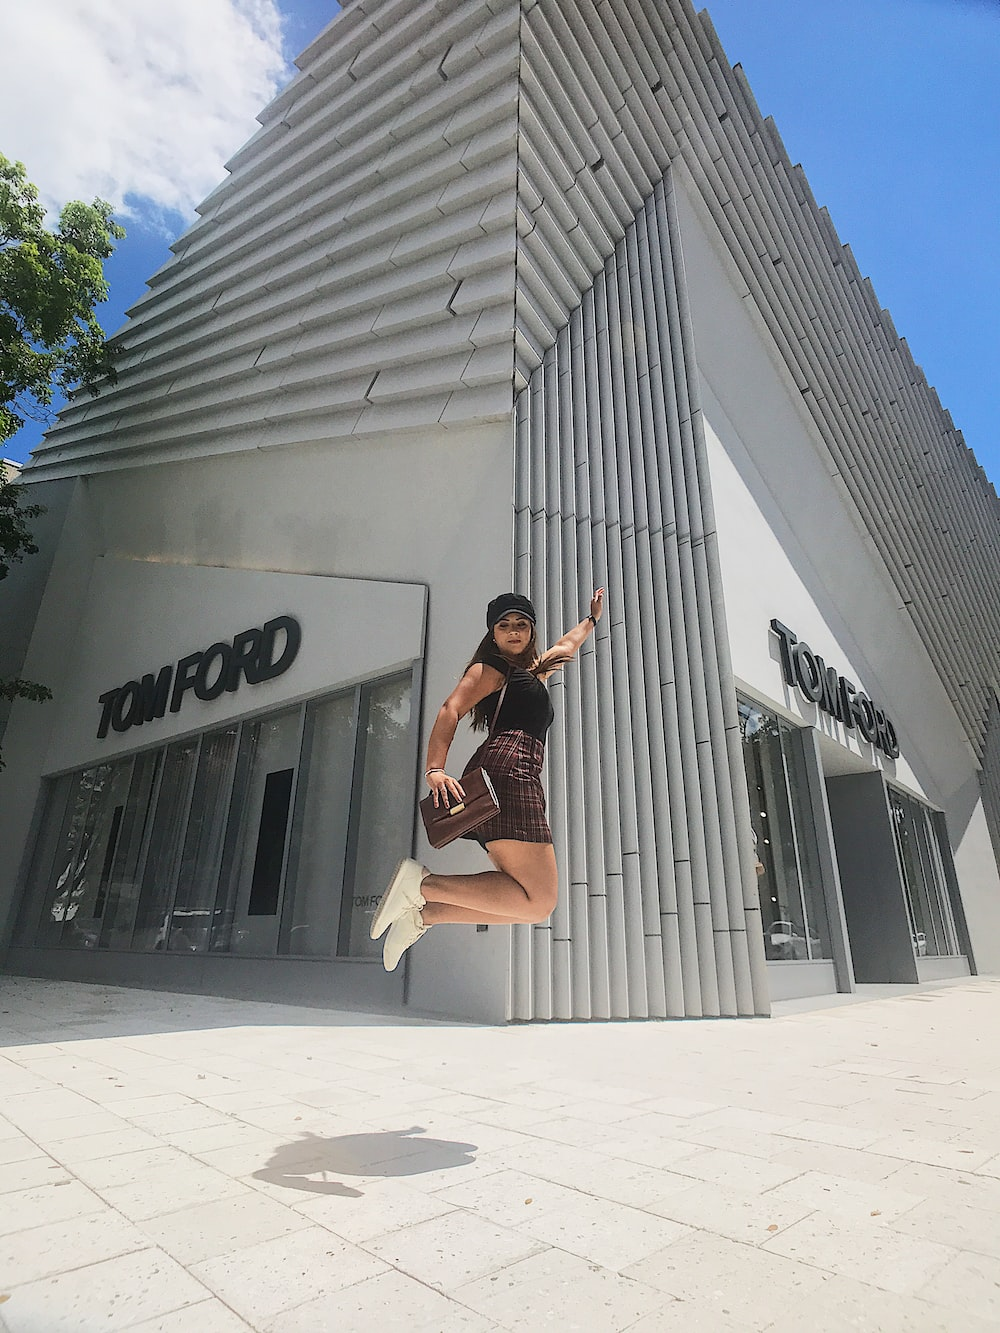 jumping woman near Tom Ford building during daytime